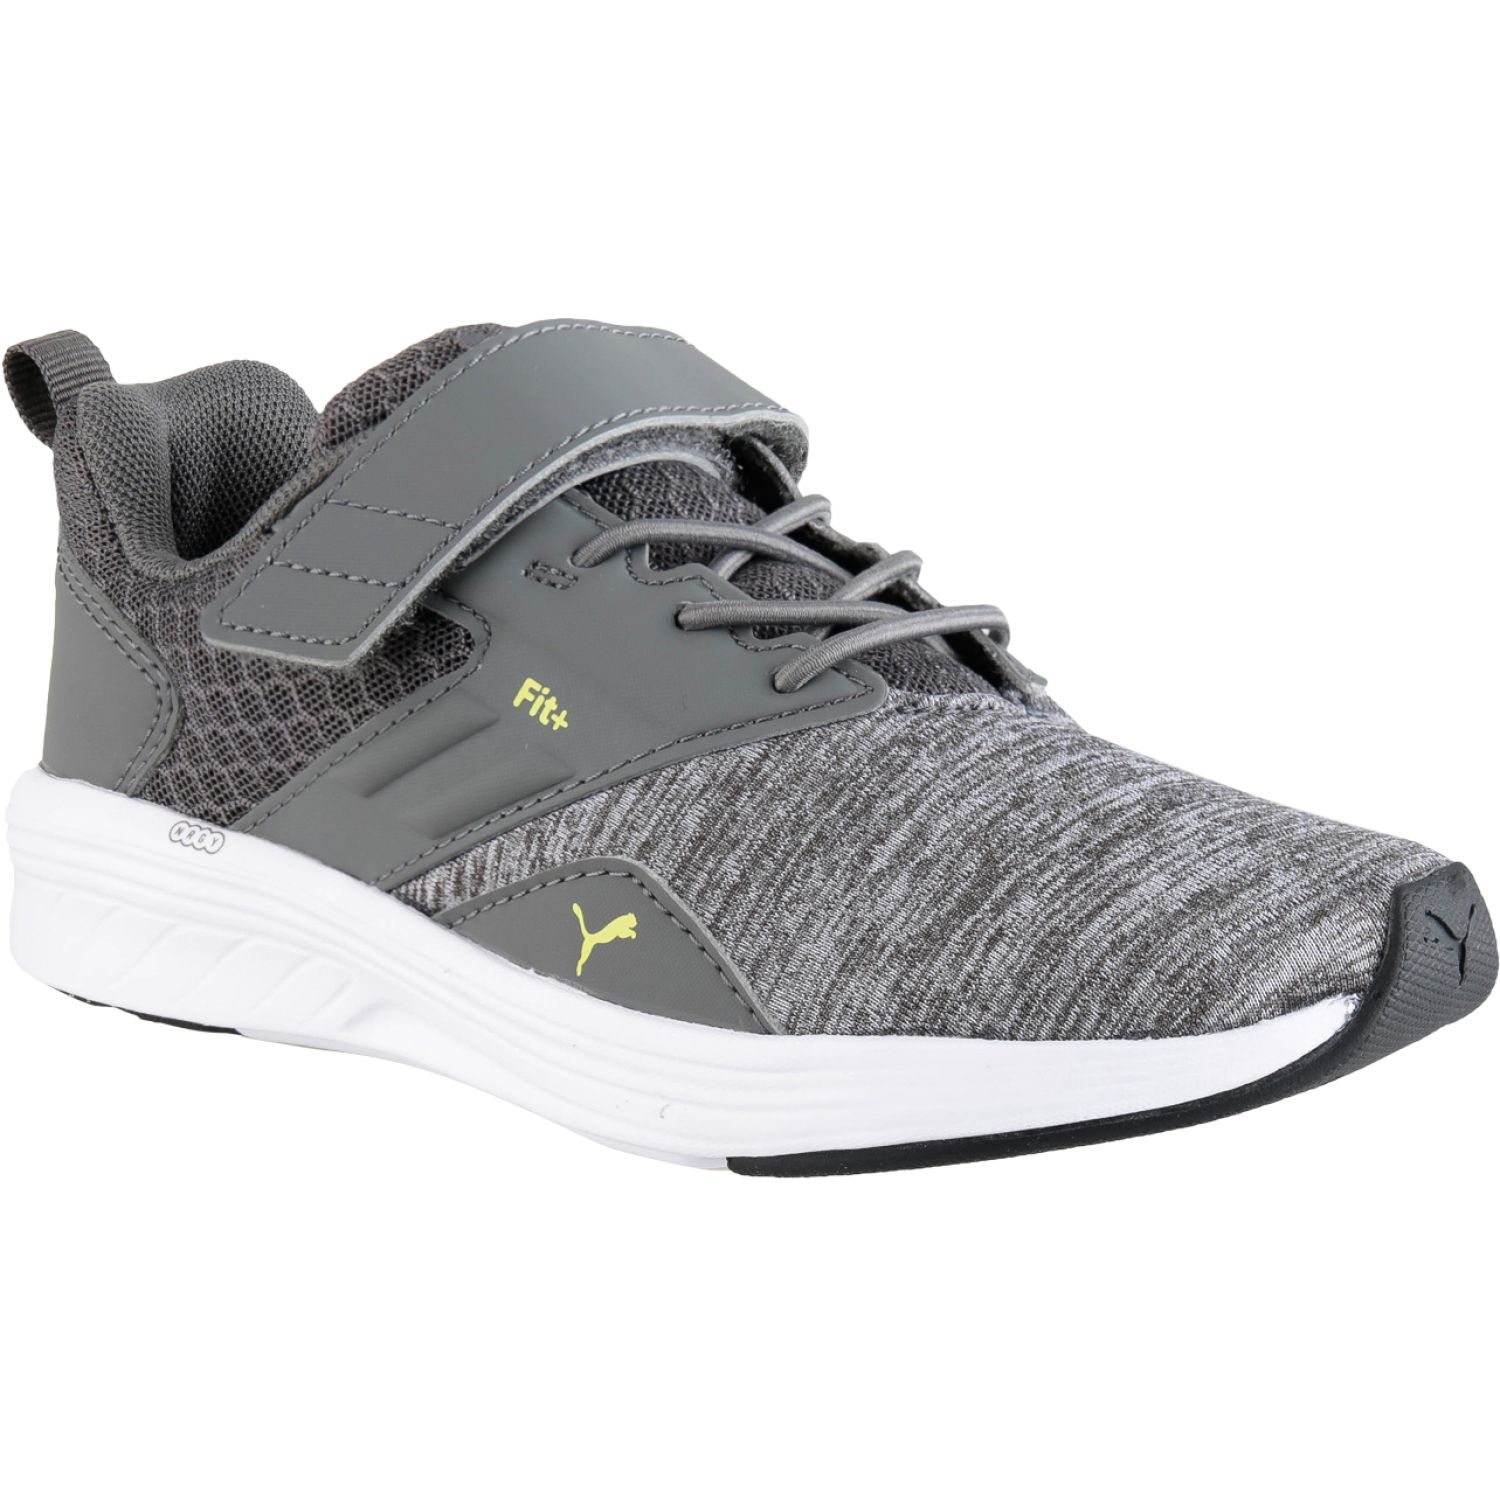 Puma nrgy comet v ps Gris / blanco Walking